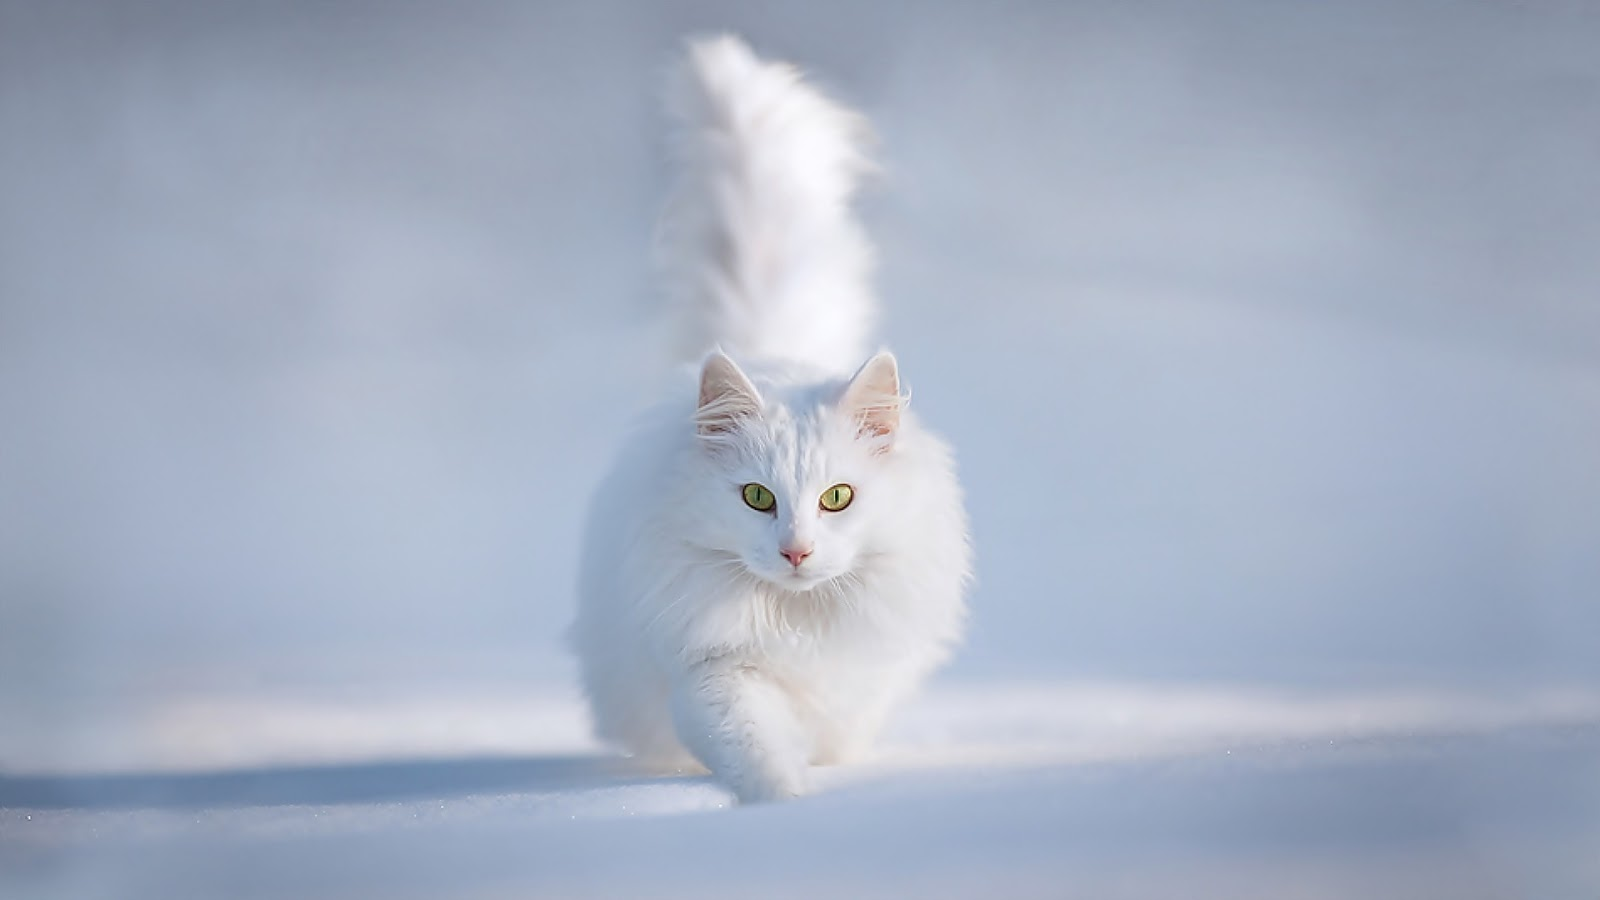 Cats images Cat in the Snow Wallpaper HD wallpaper and background ...